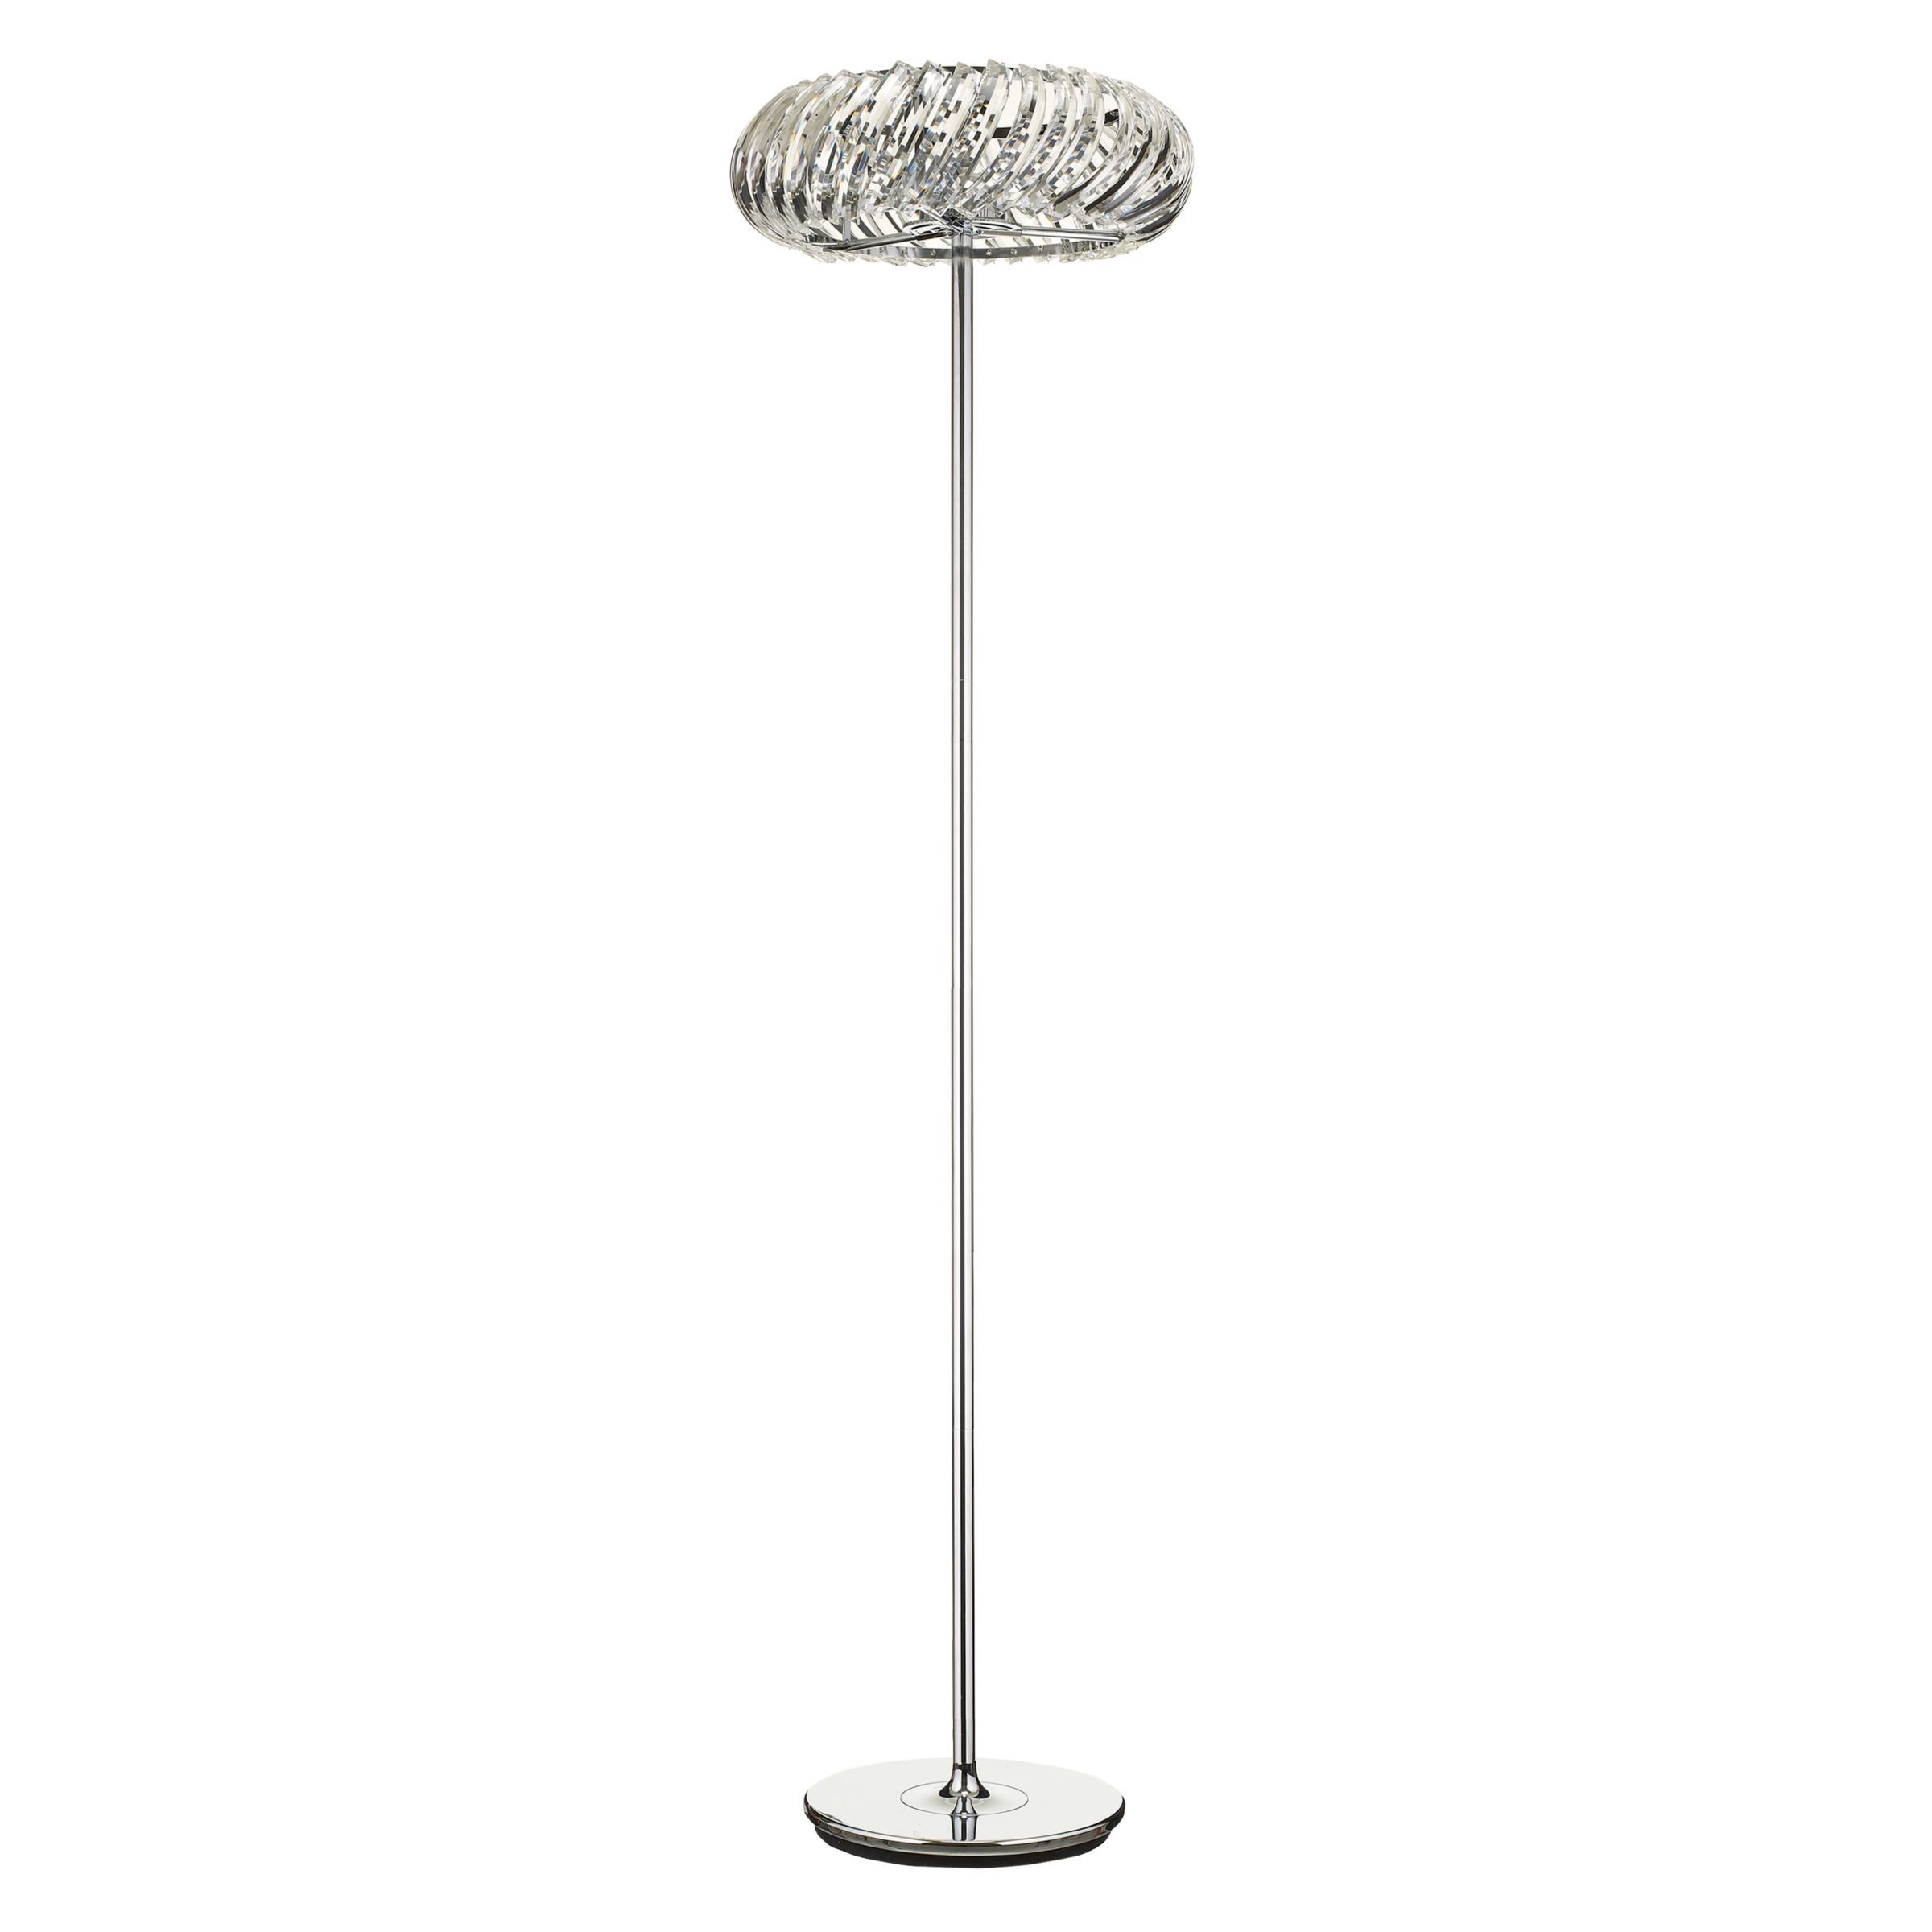 Ultra Modern Floor Lamp John Lewis Cressida Floor Lamp Review Compare Prices